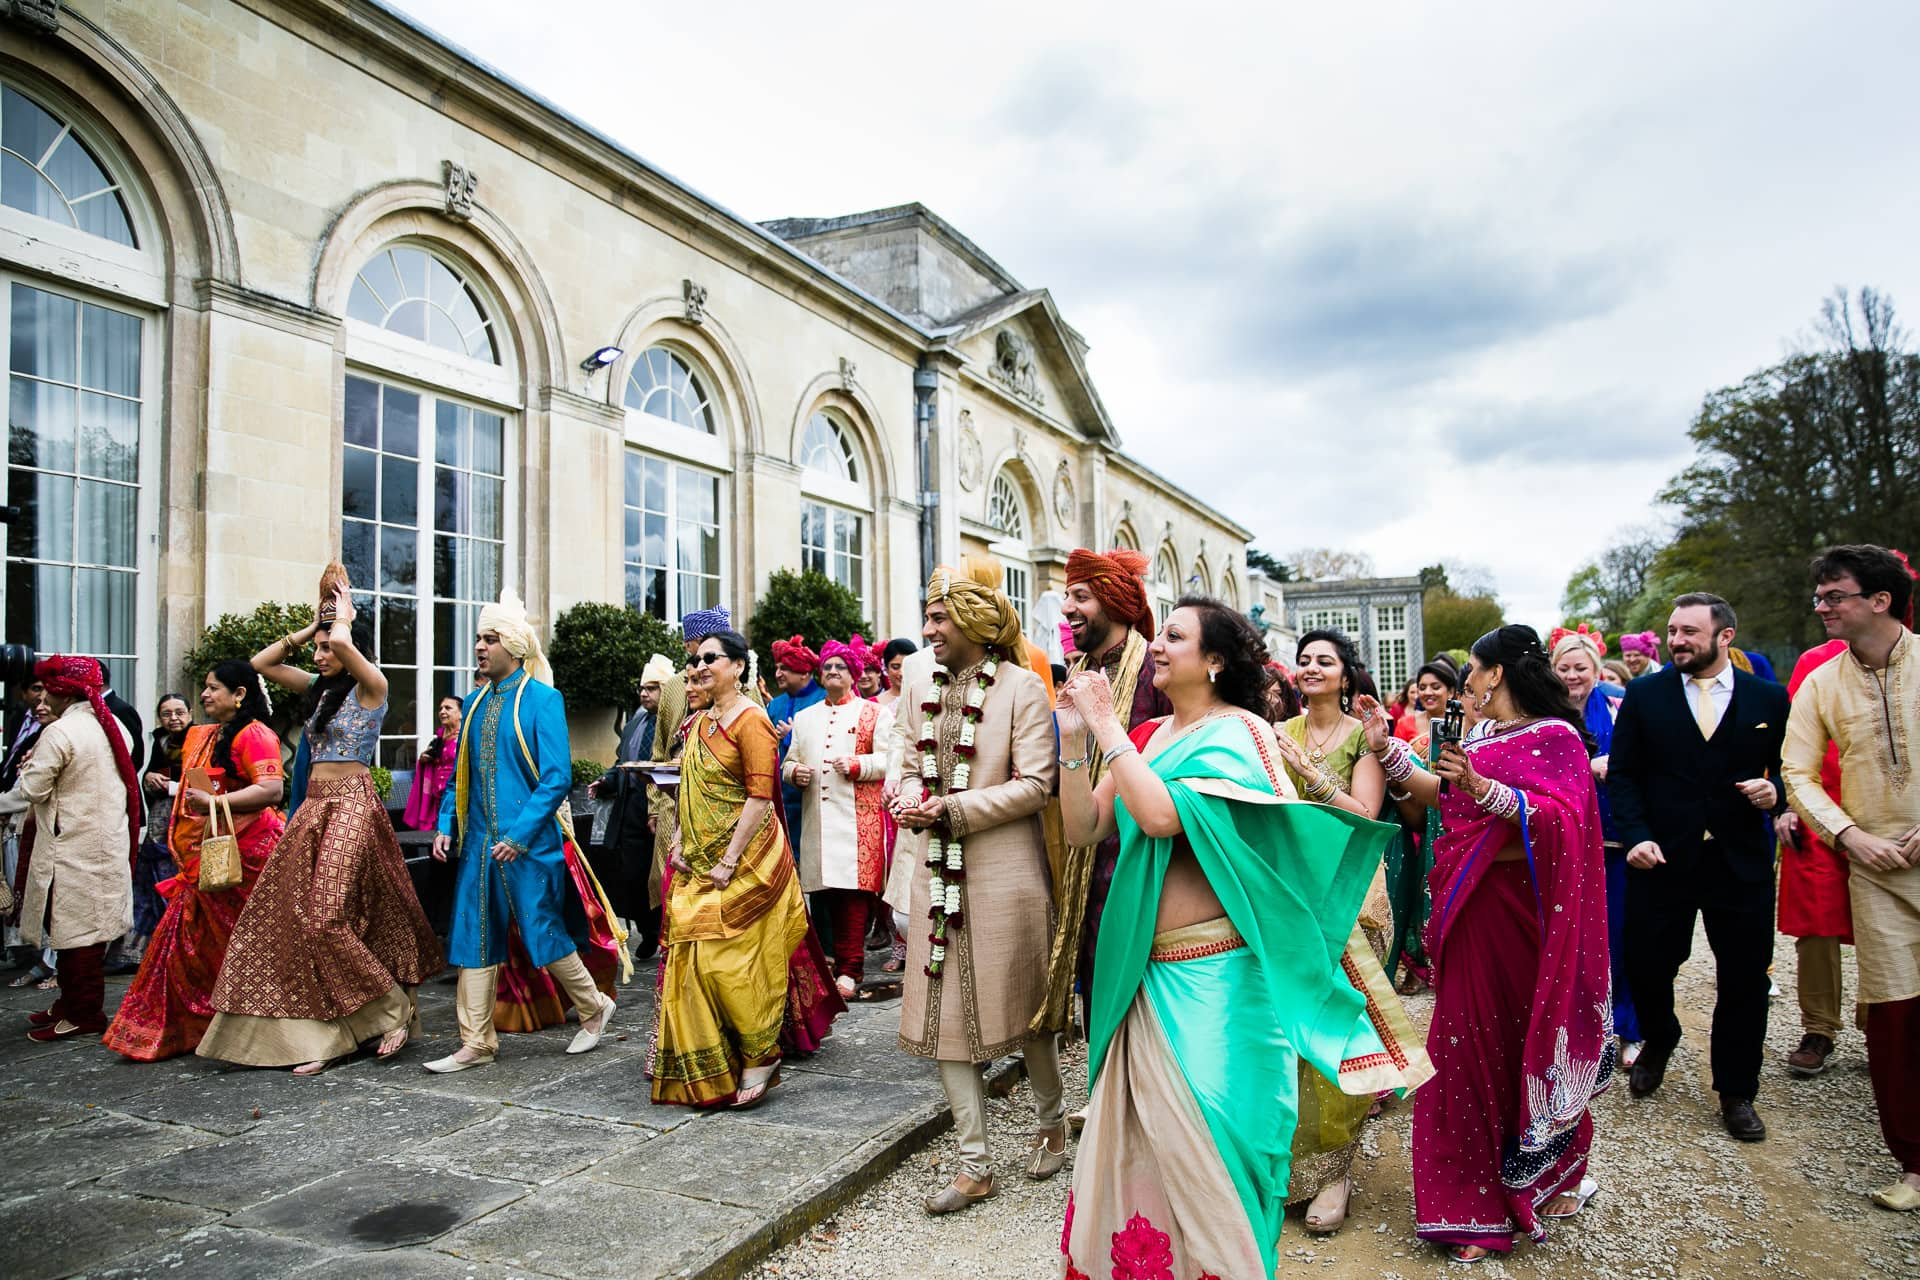 Asian Wedding procession at Woburn Abbey Sculpture Gallery